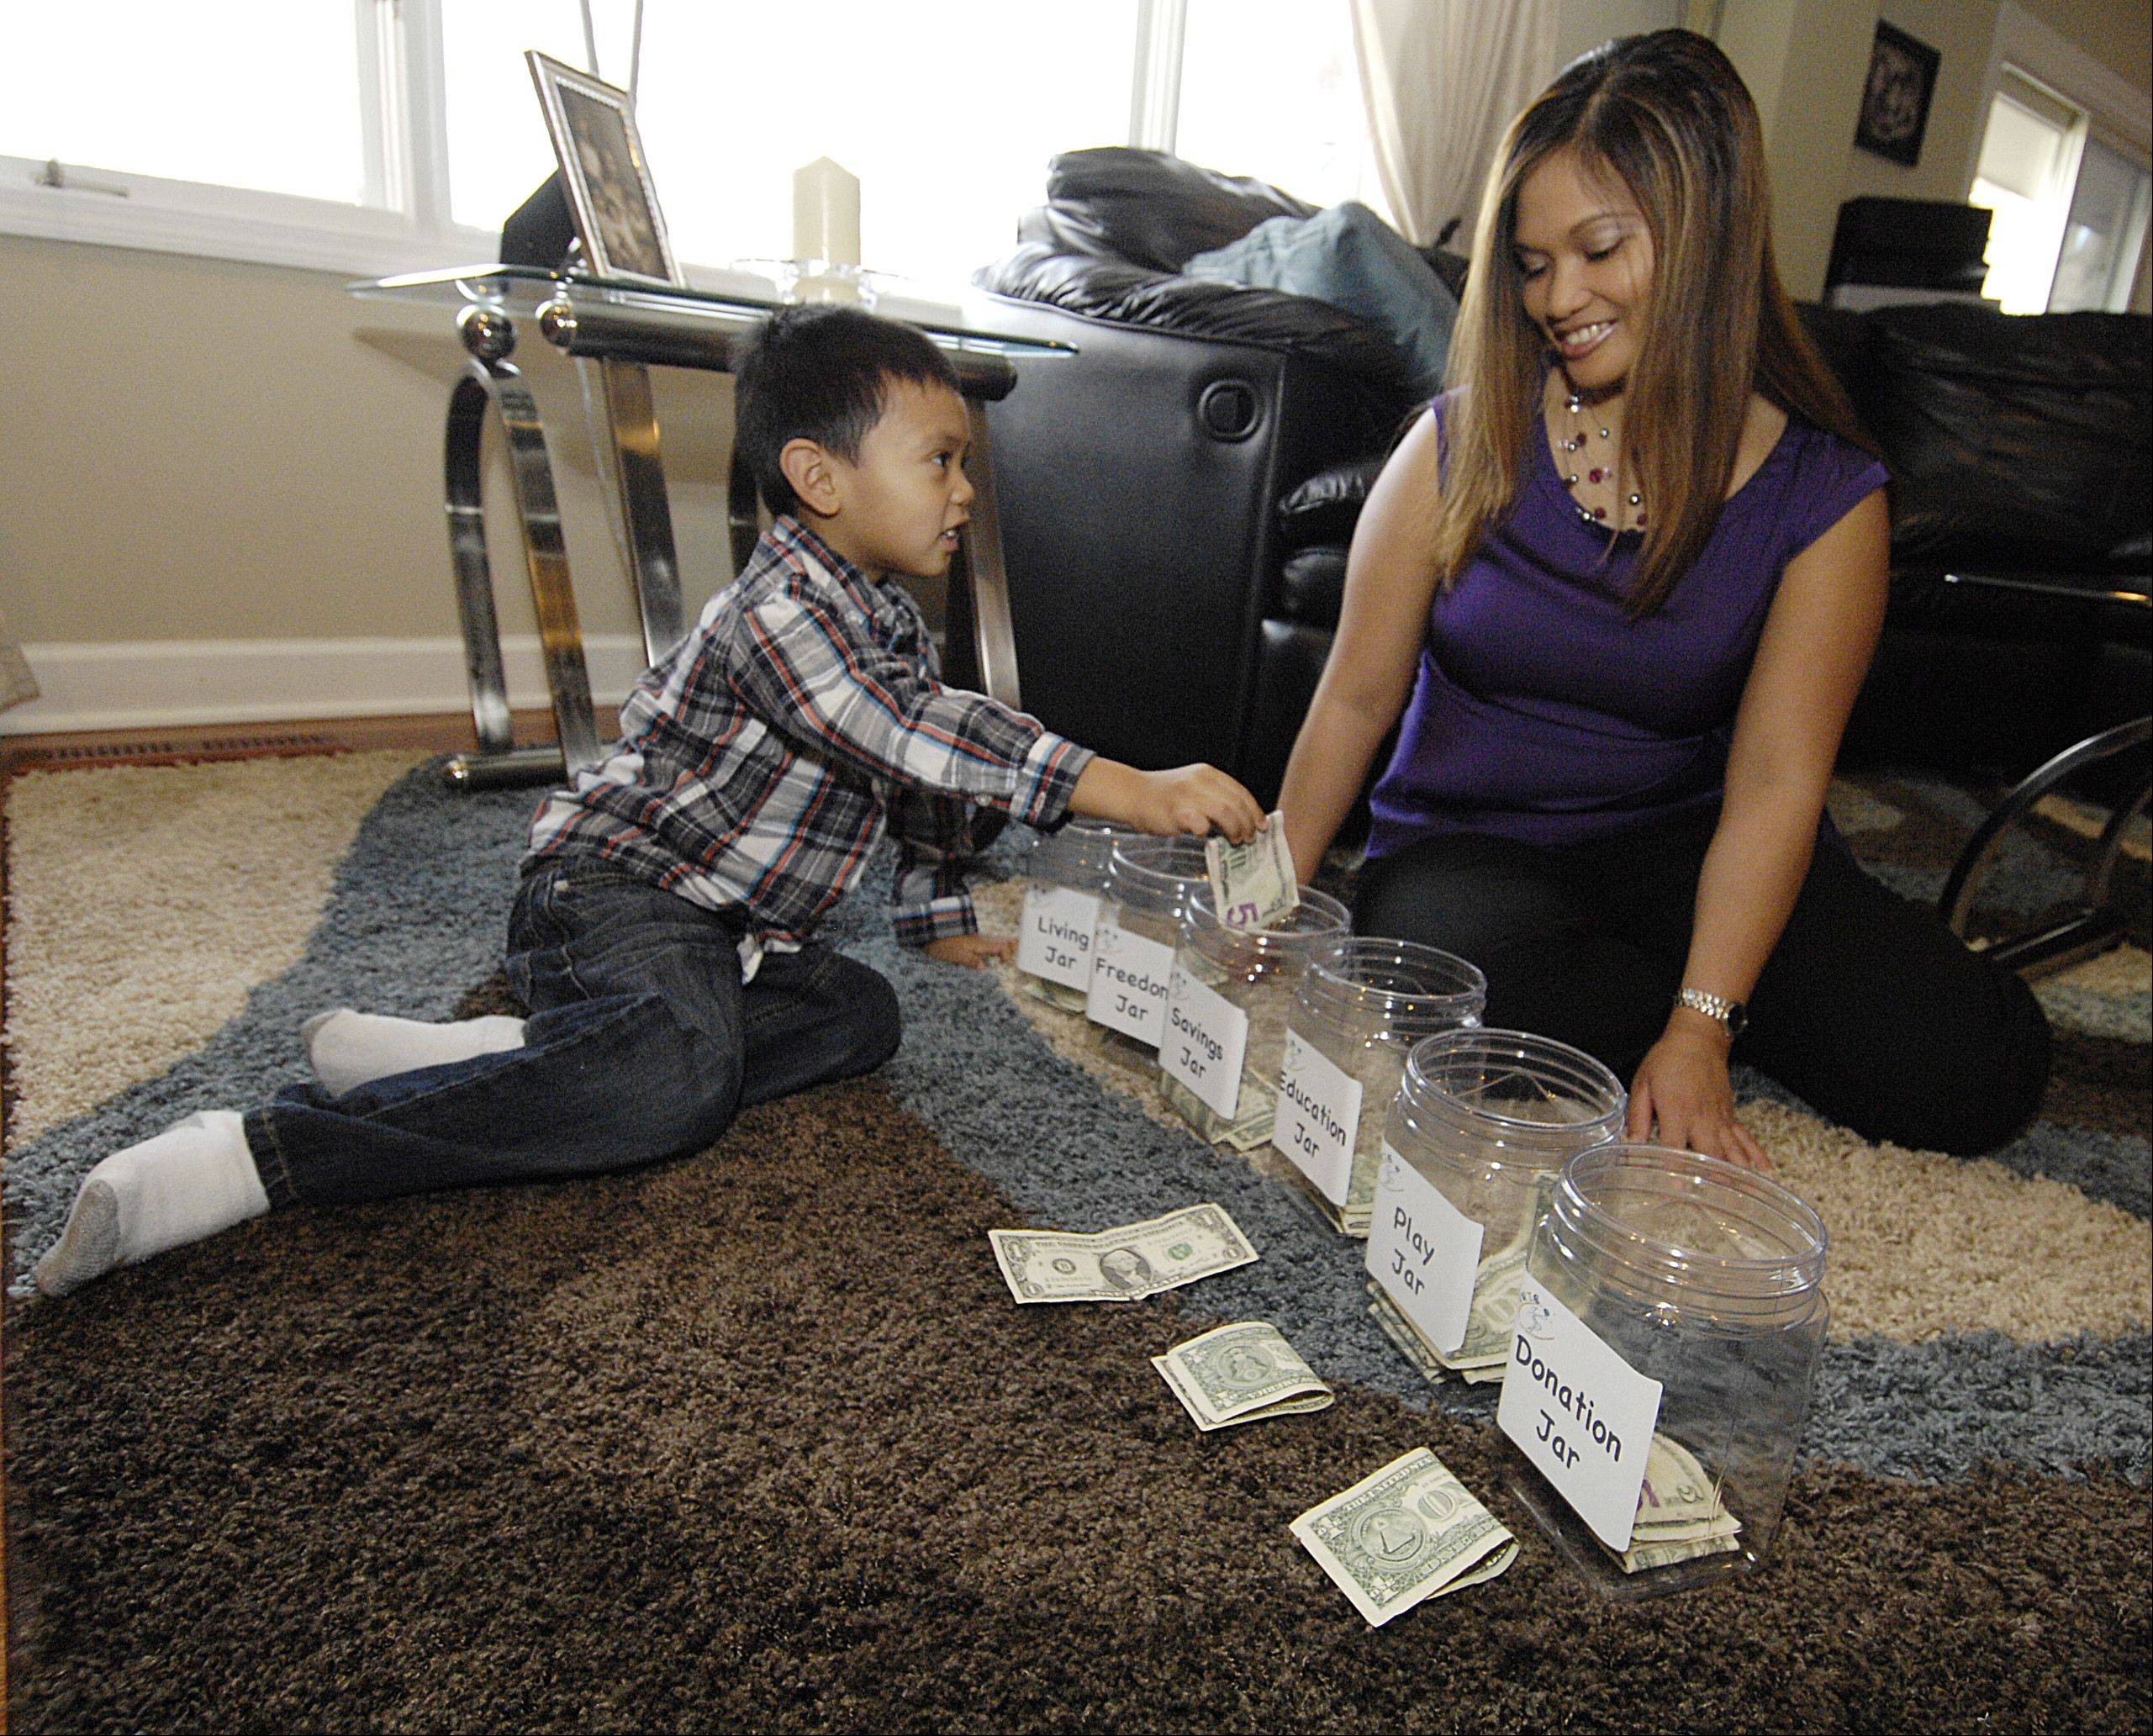 Dean Javier, 4, places money in labeled money jars to help him organize his money, while his mother Melanie Jane Nicolas looks on. Fifty percent of gifts and allowance money go into the living jar for wants and needs. The rest is divided equally among the jars for financial freedom (investments), savings, education, play and donations.